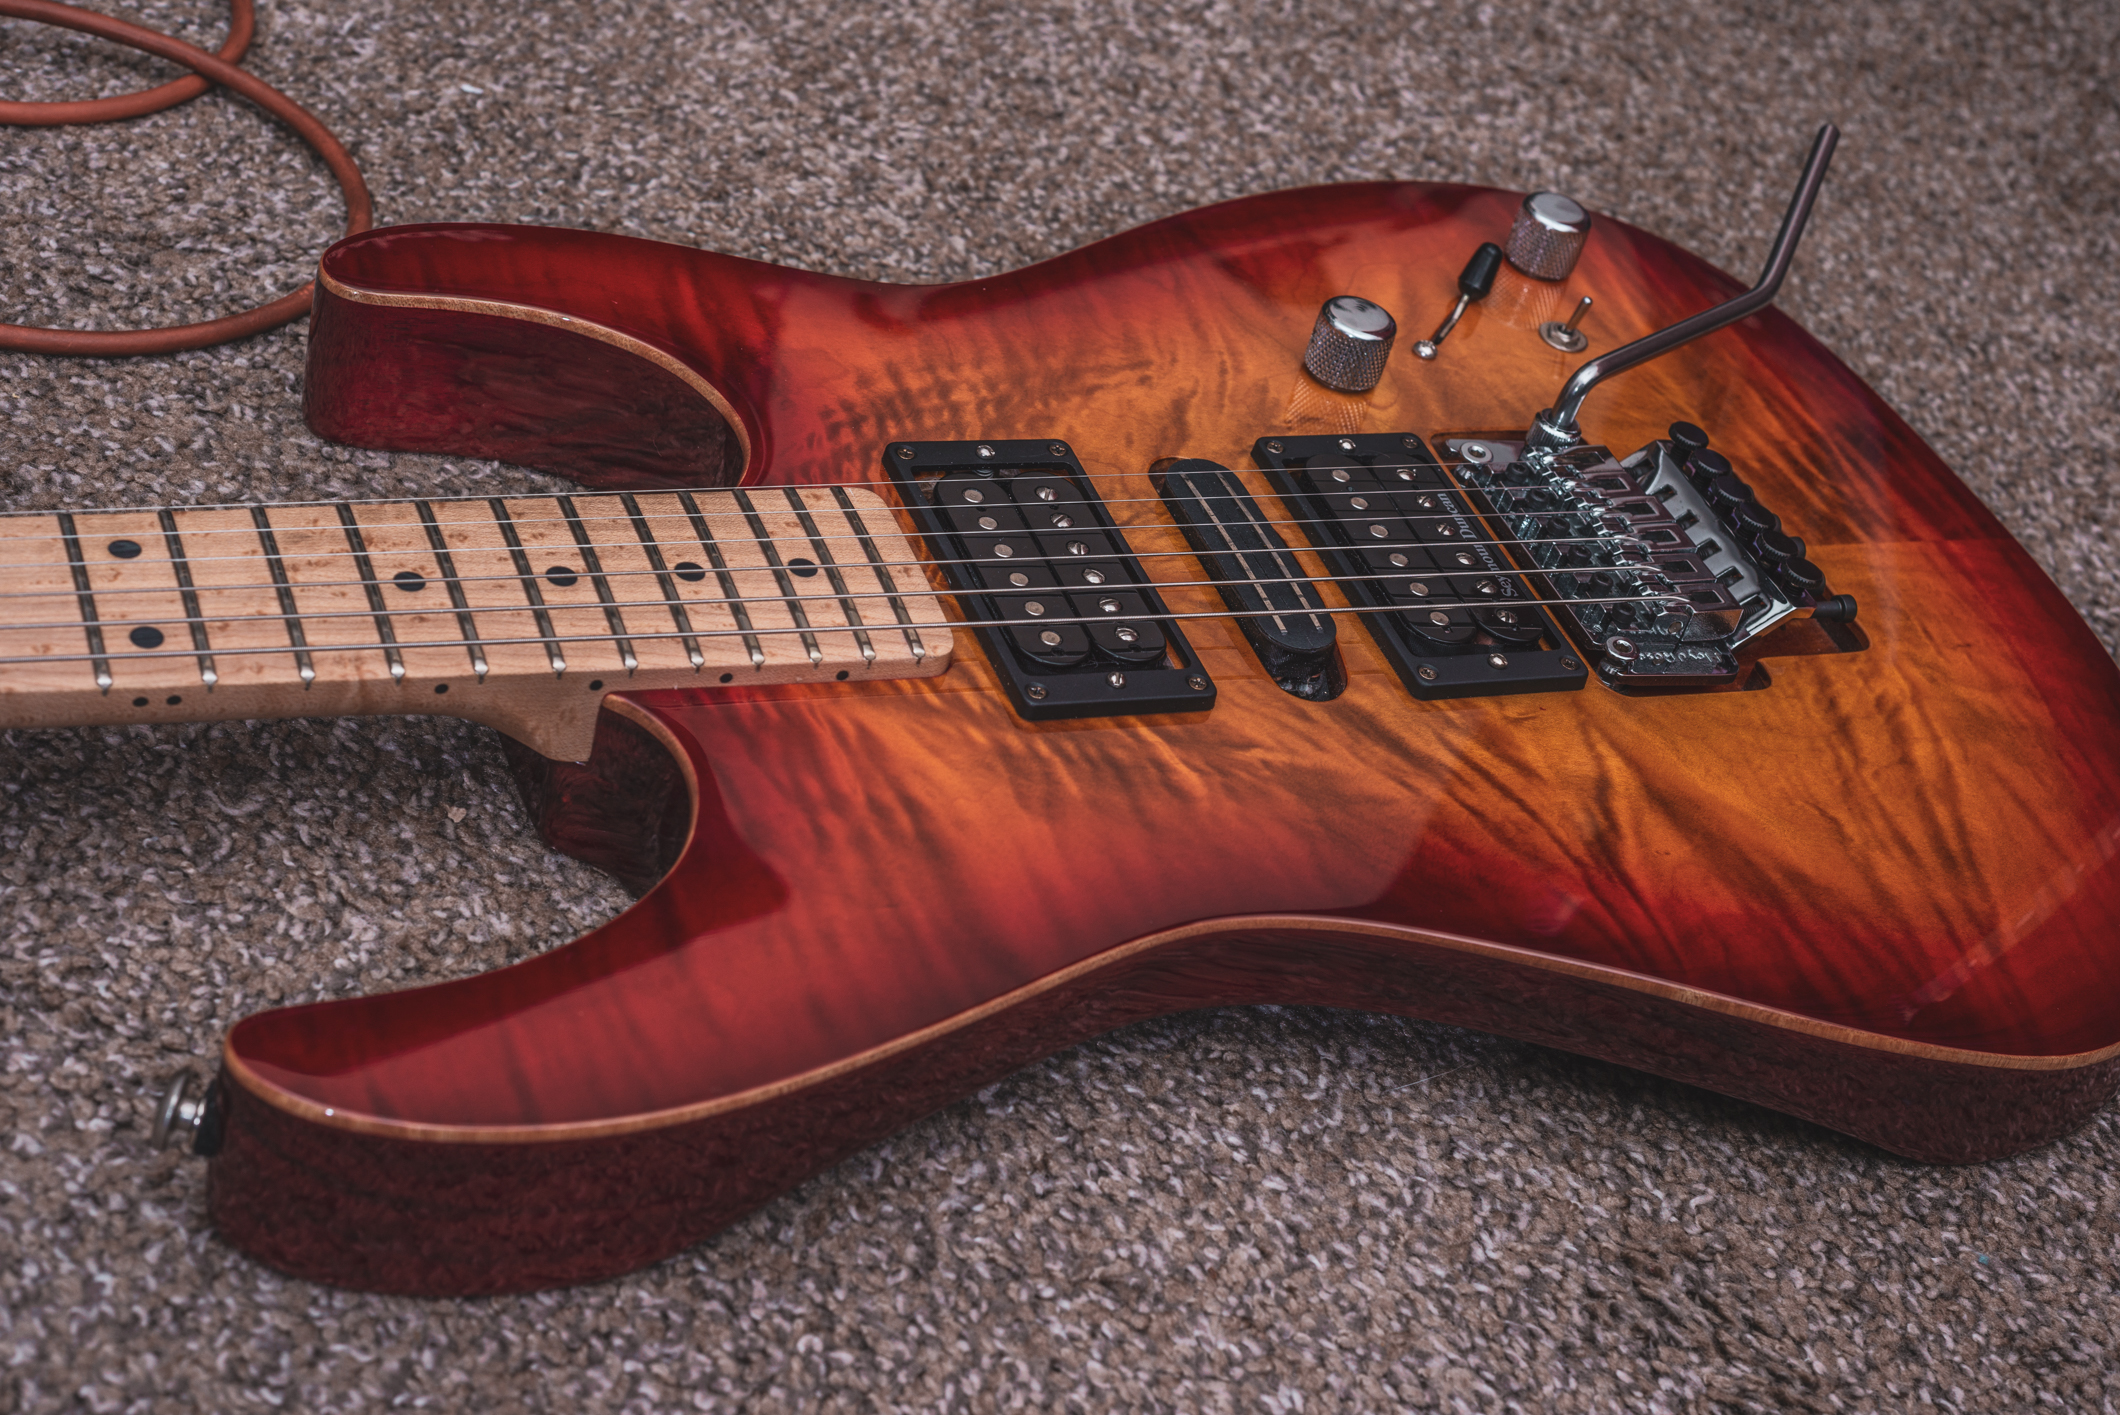 The body has natural edge binding around the maple top.